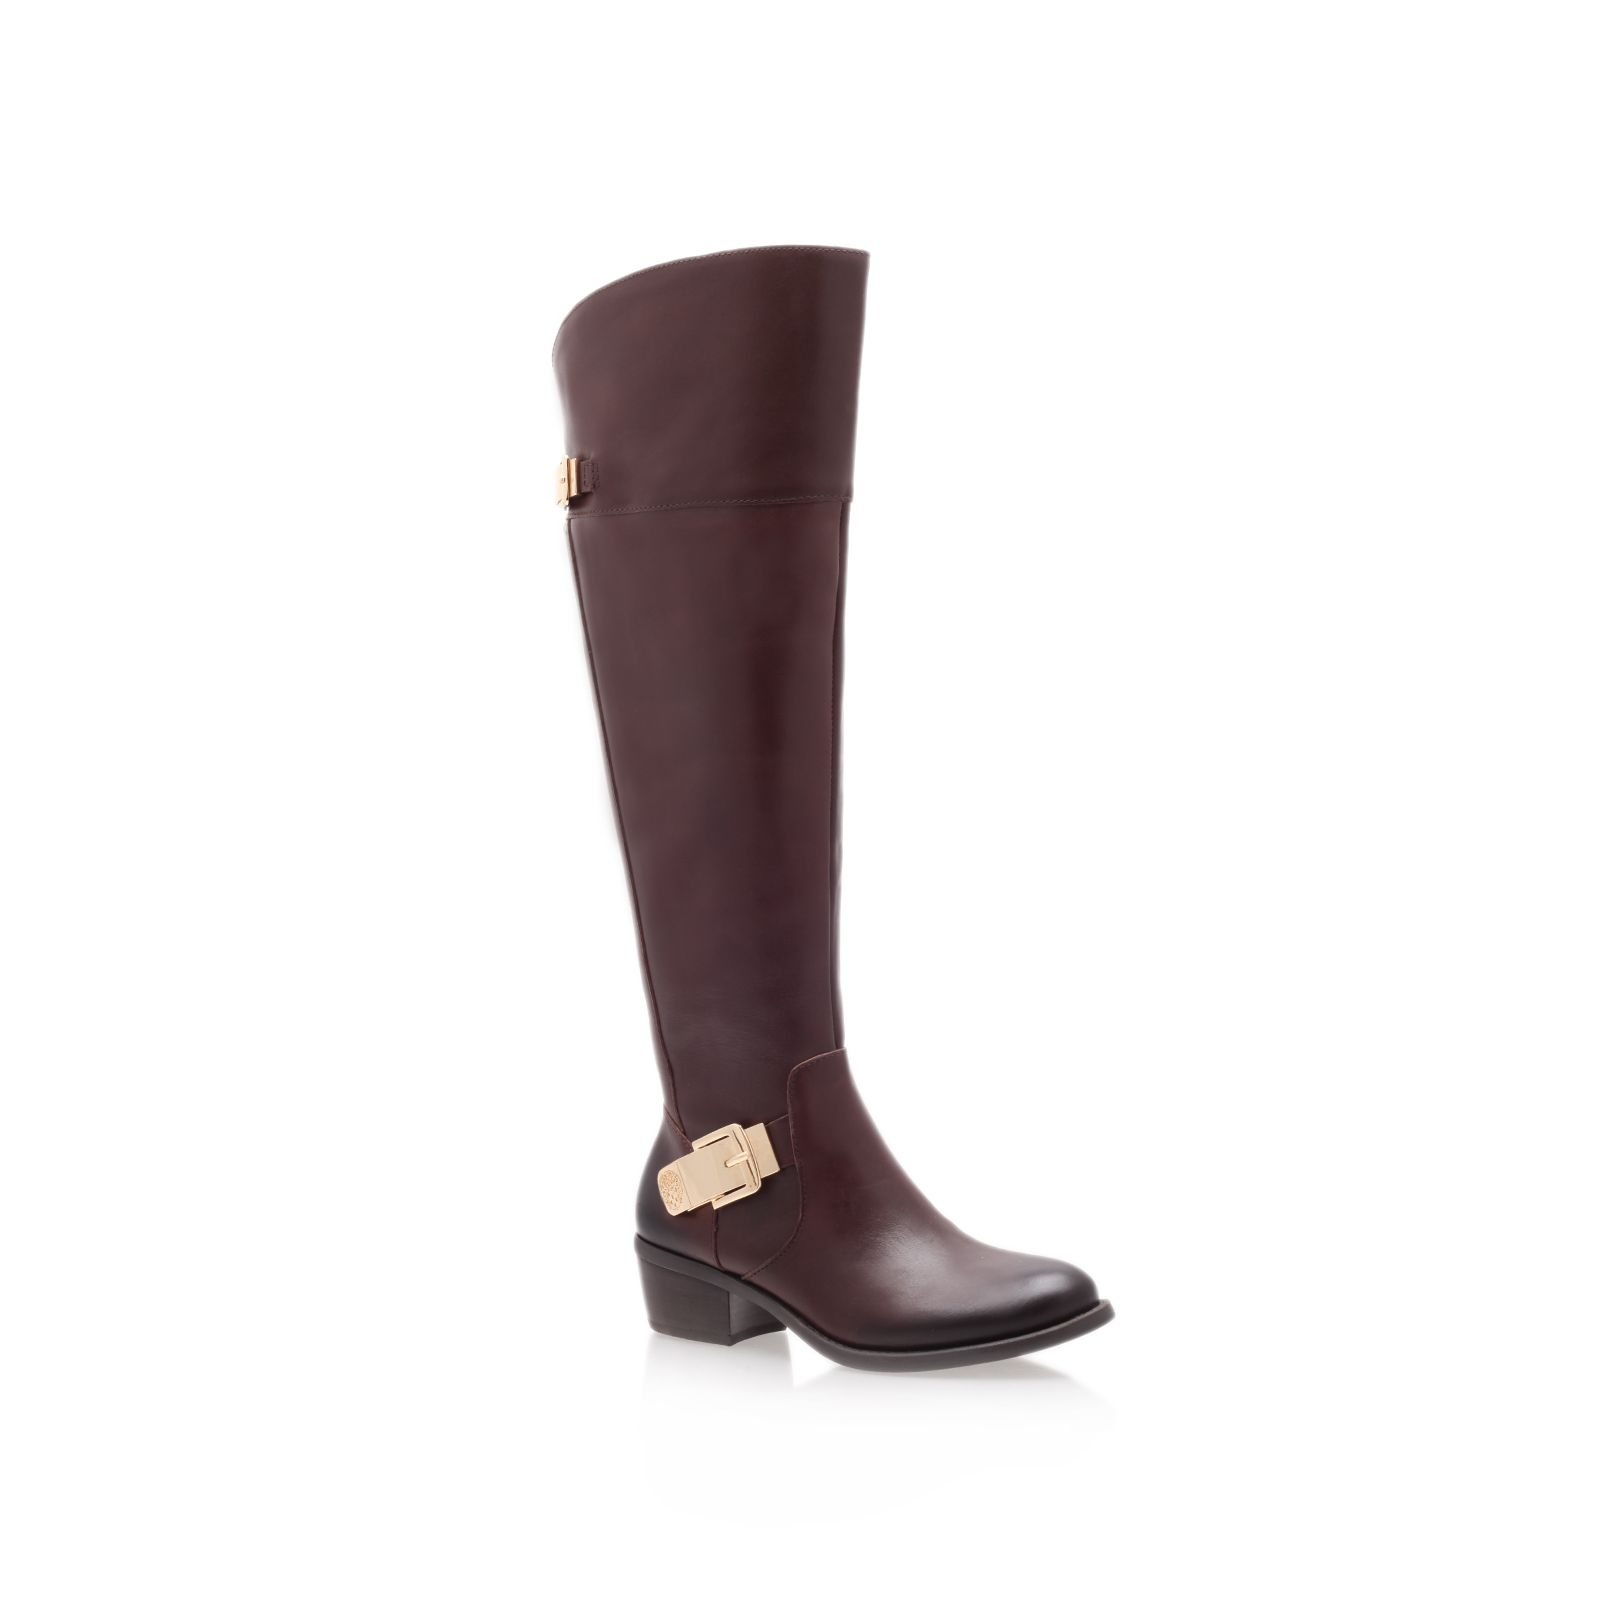 Bocca low heel knee boots